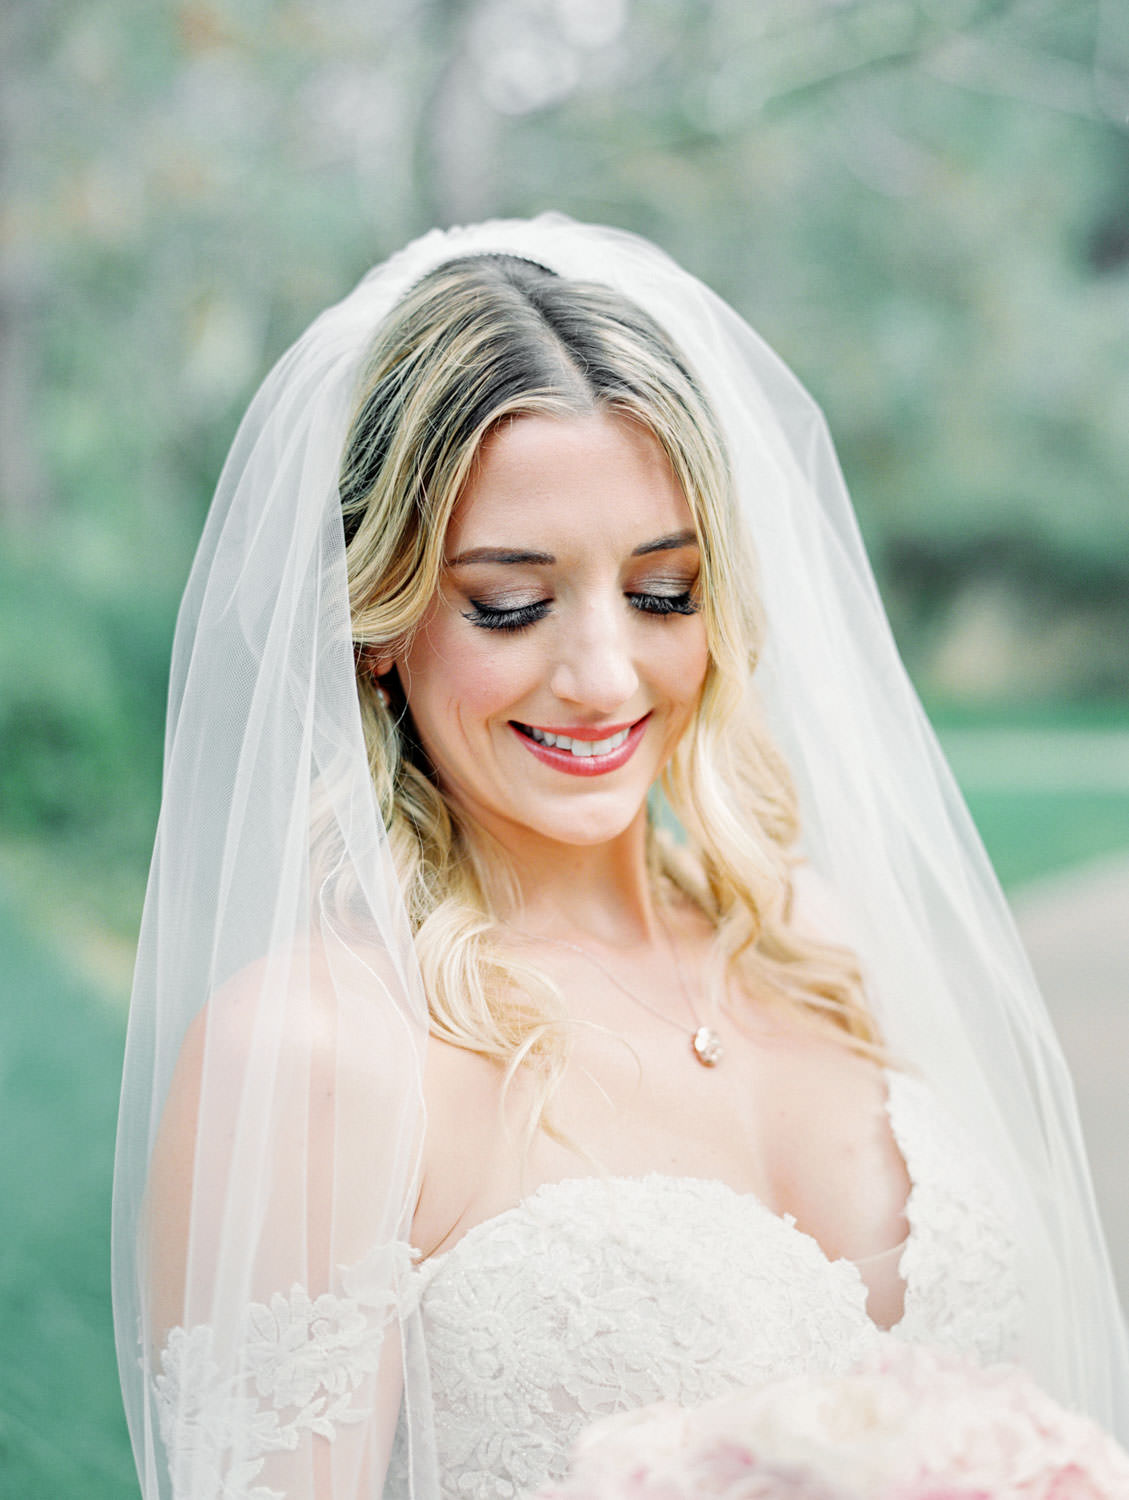 Bride in Pronovias off shoulder lace gown with veil and hair curled and down, classic bridal portrait, Lodge at Torrey Pines wedding, film photography by Cavin Elizabeth Photography